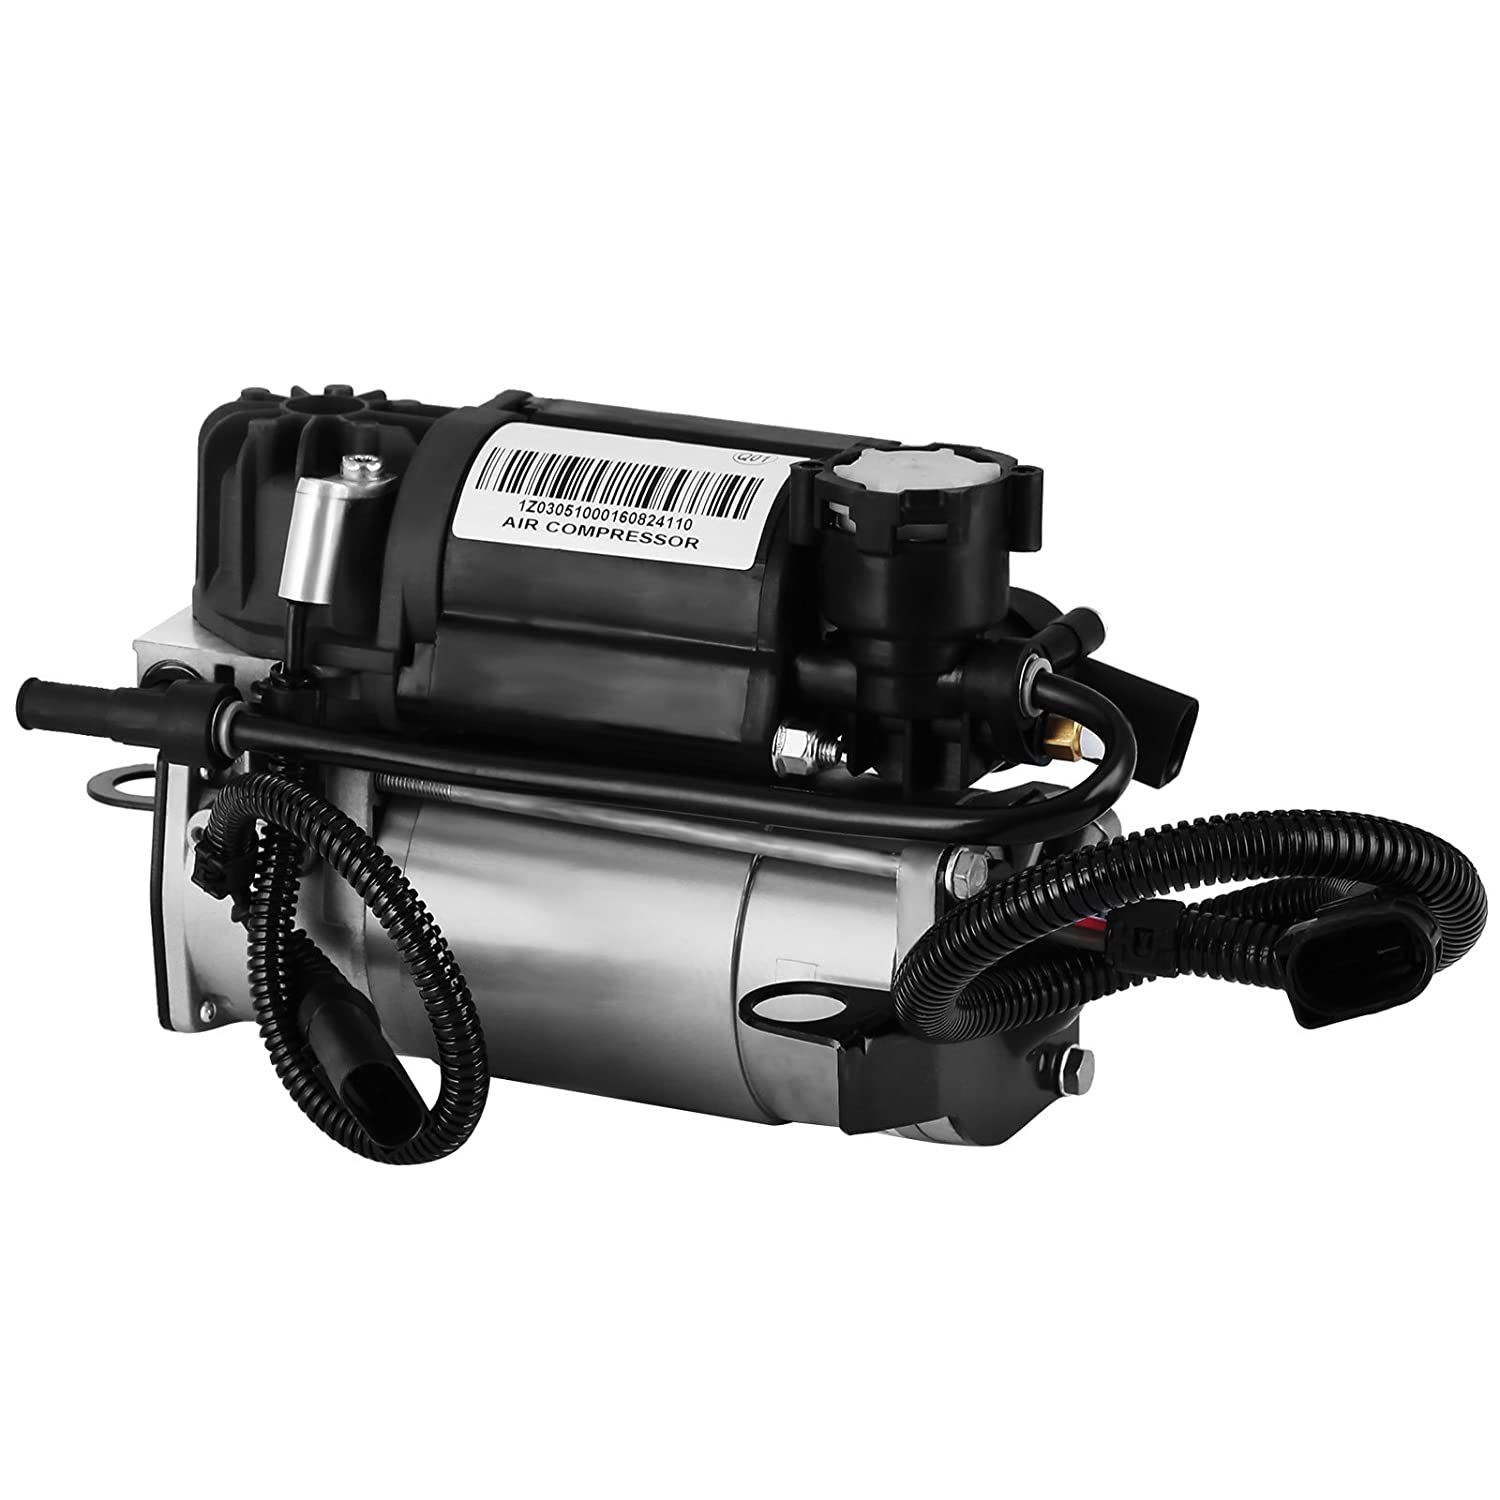 Replacement Air Compressor Pump >> Lovshare Auto Air Pump Replacement Air Suspension Compressor Car Compressor Air Compressor Pump For Audi A8 Gas Engine 6 8 Cylinder For Audi A8